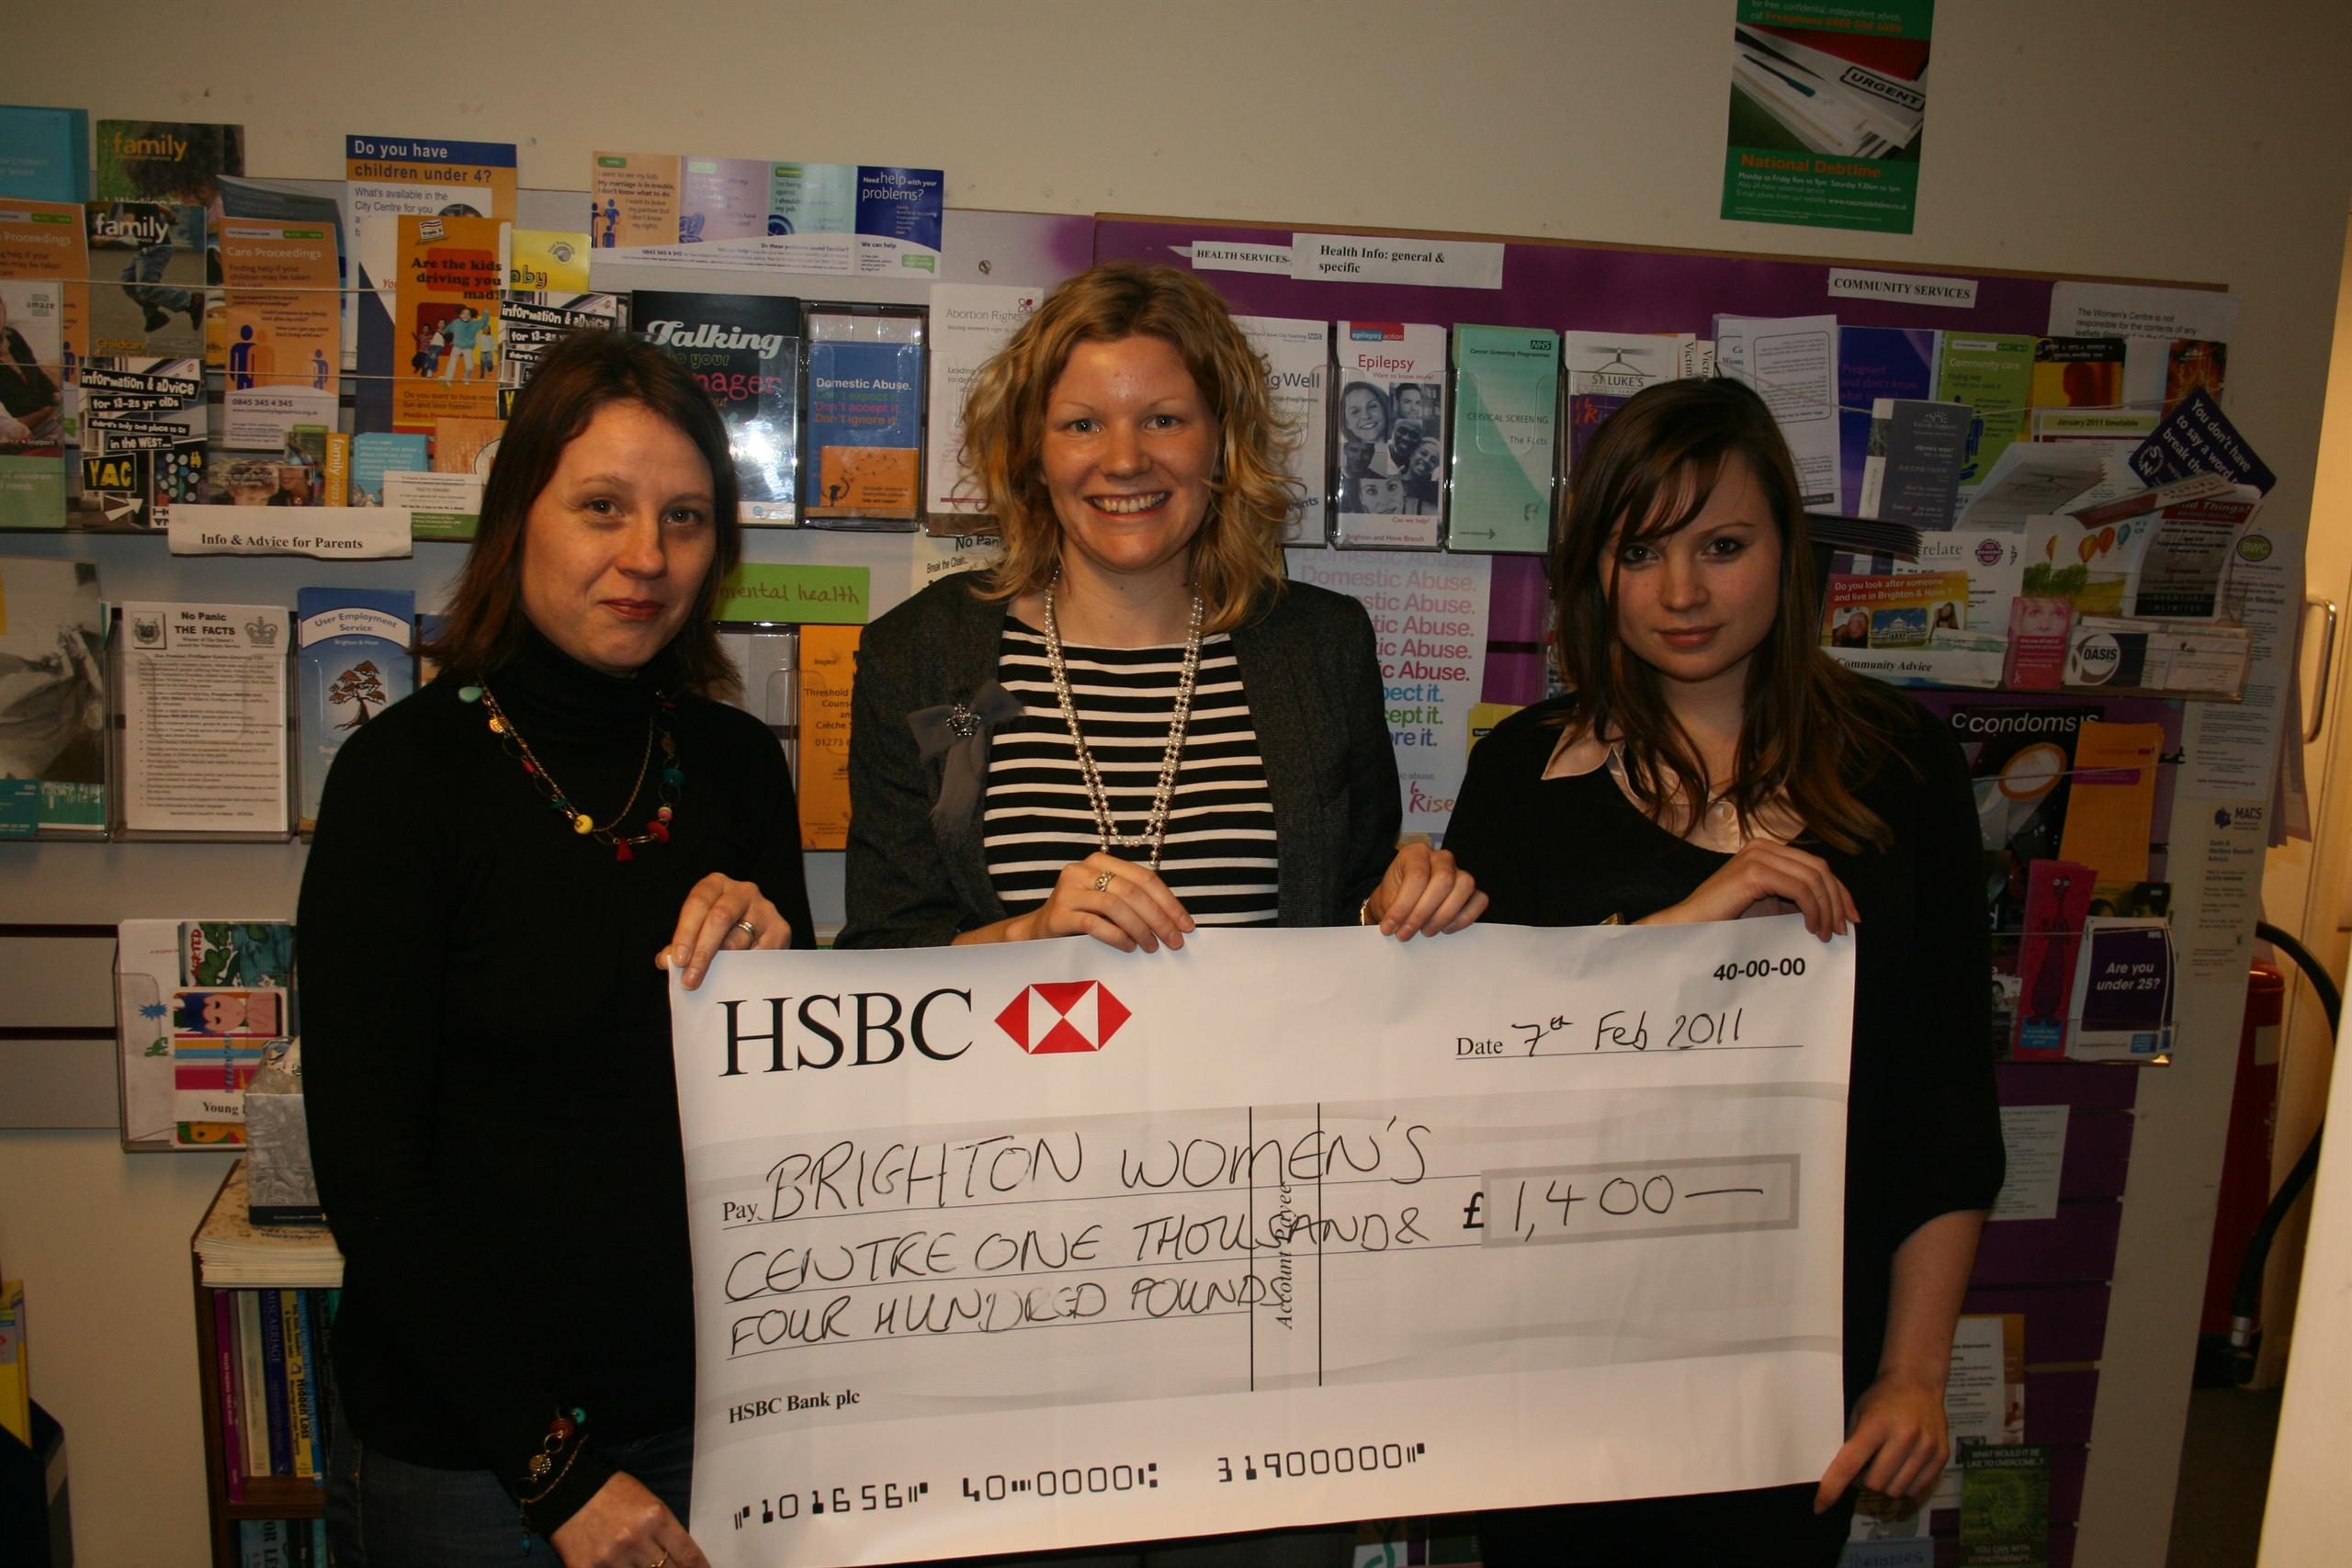 Presenting a charity cheque with colleagues